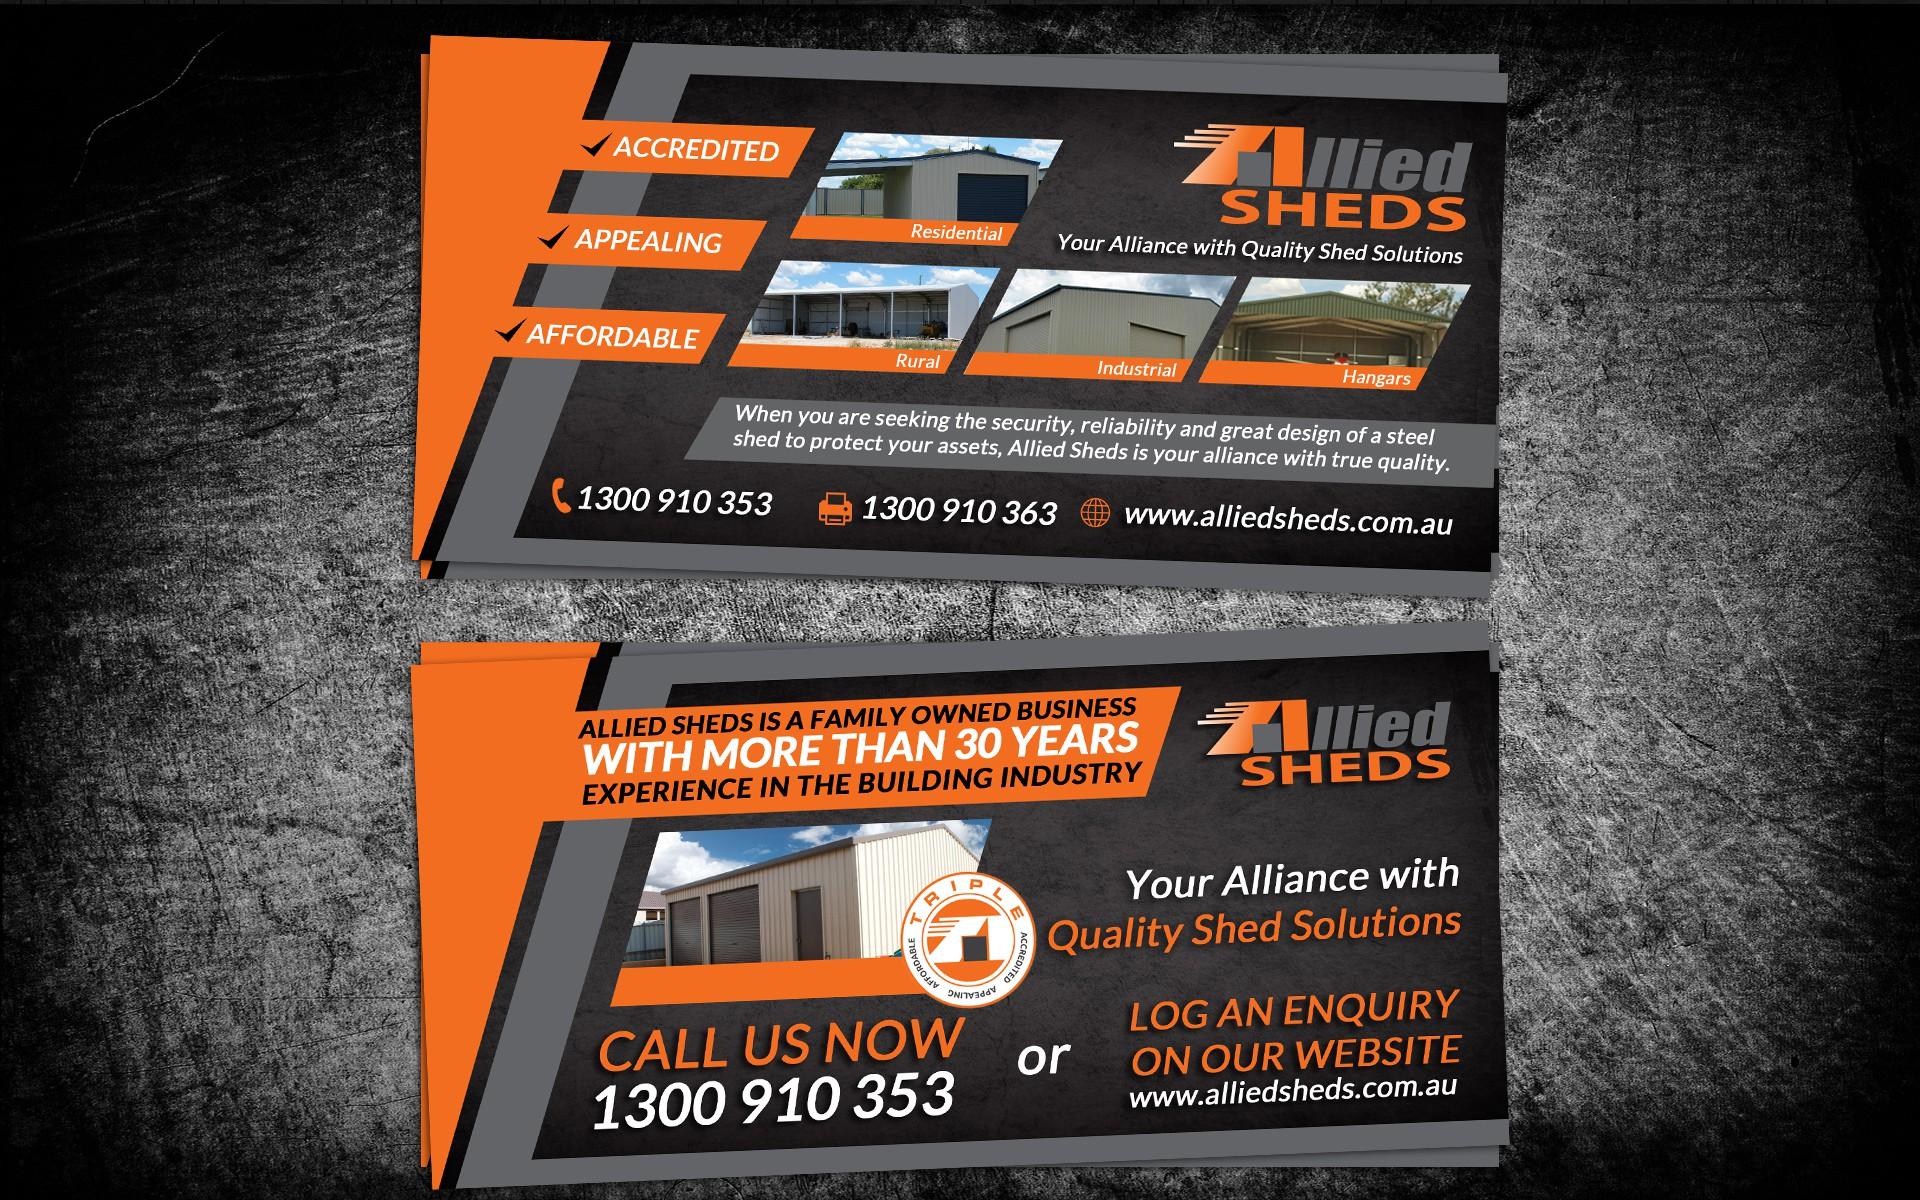 Allied Sheds needs a new postcard or flyer